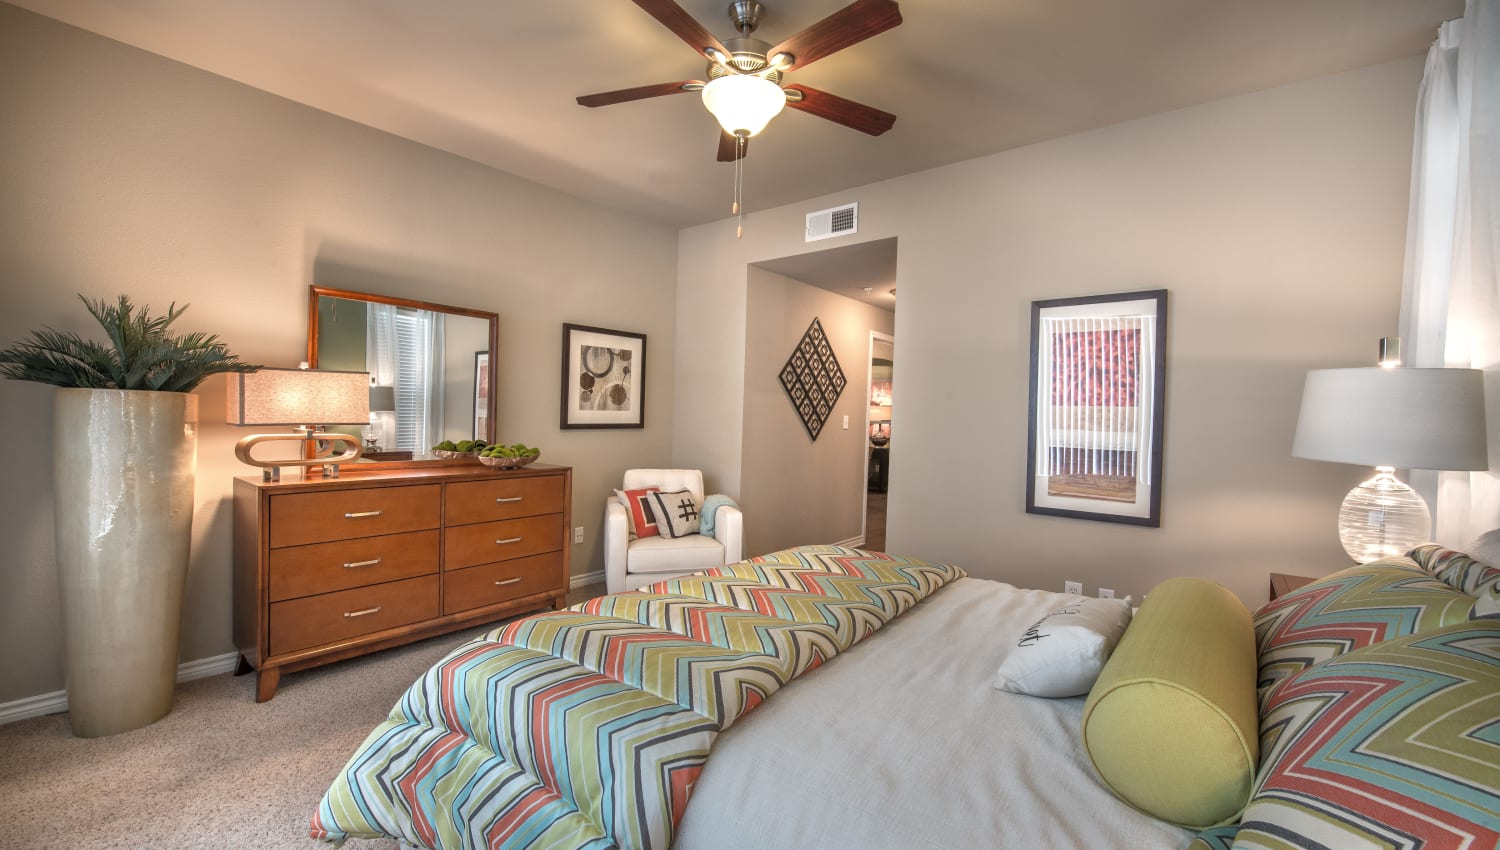 Well decorated comfortable bedroom at Olympus 7th Street Station in Fort Worth, Texas features a ceiling fan